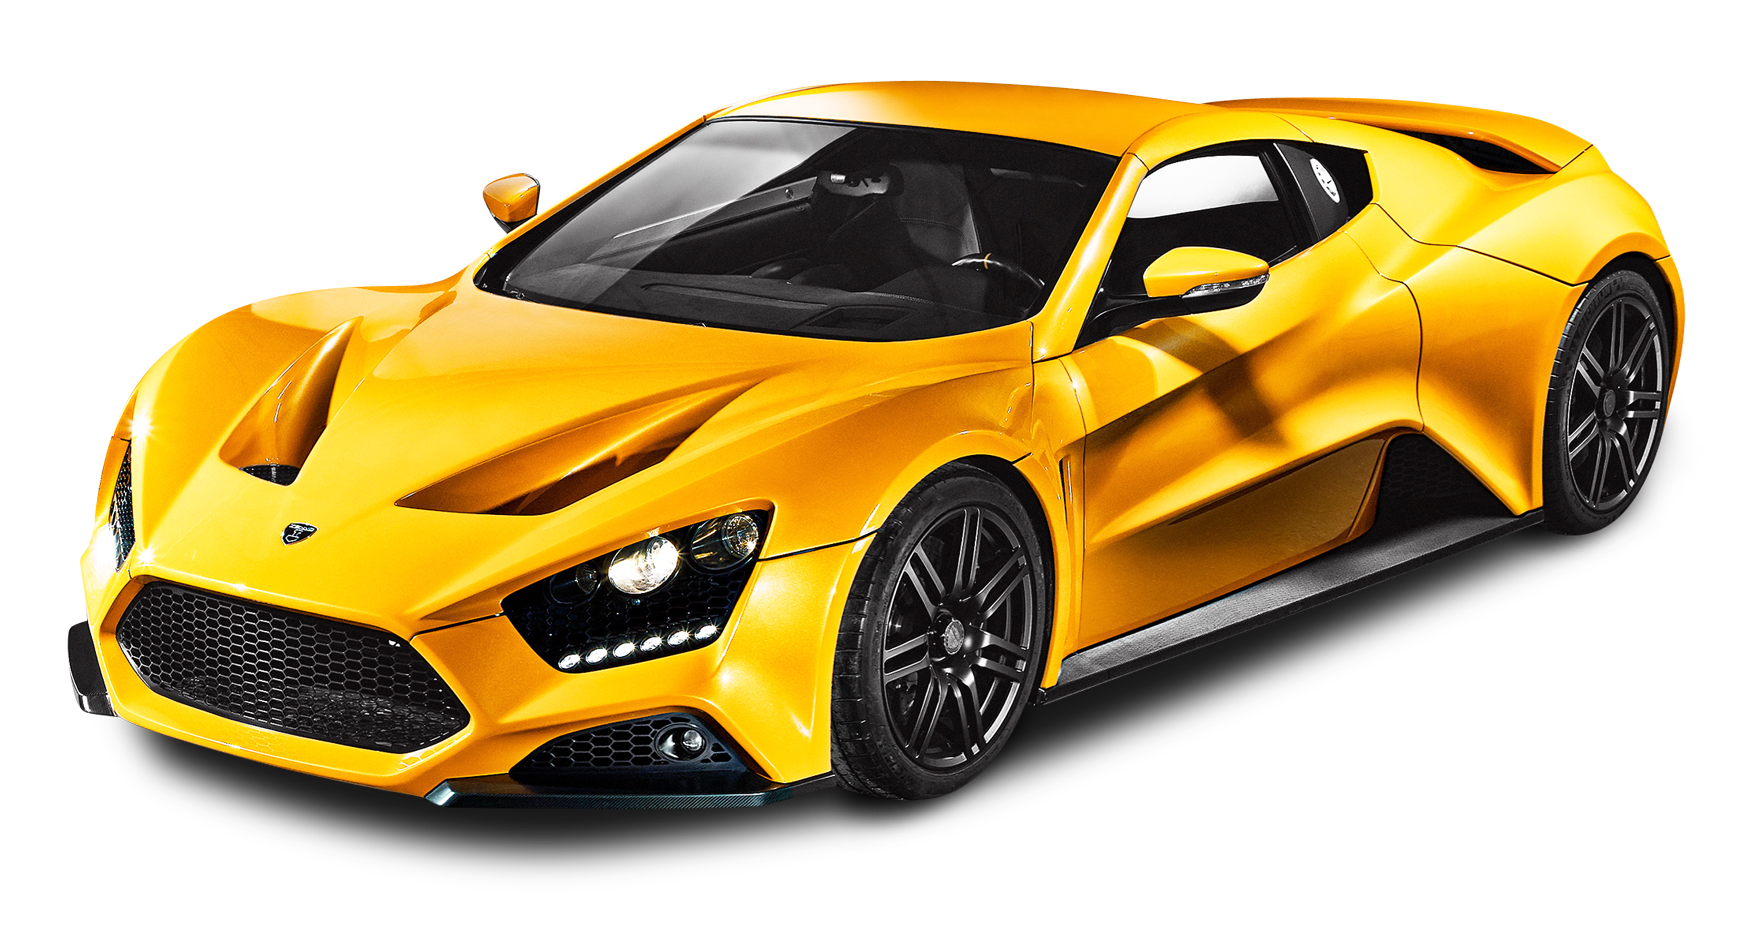 Yellow Zenvo ST1 Car PNG Image (With images) Zenvo st1